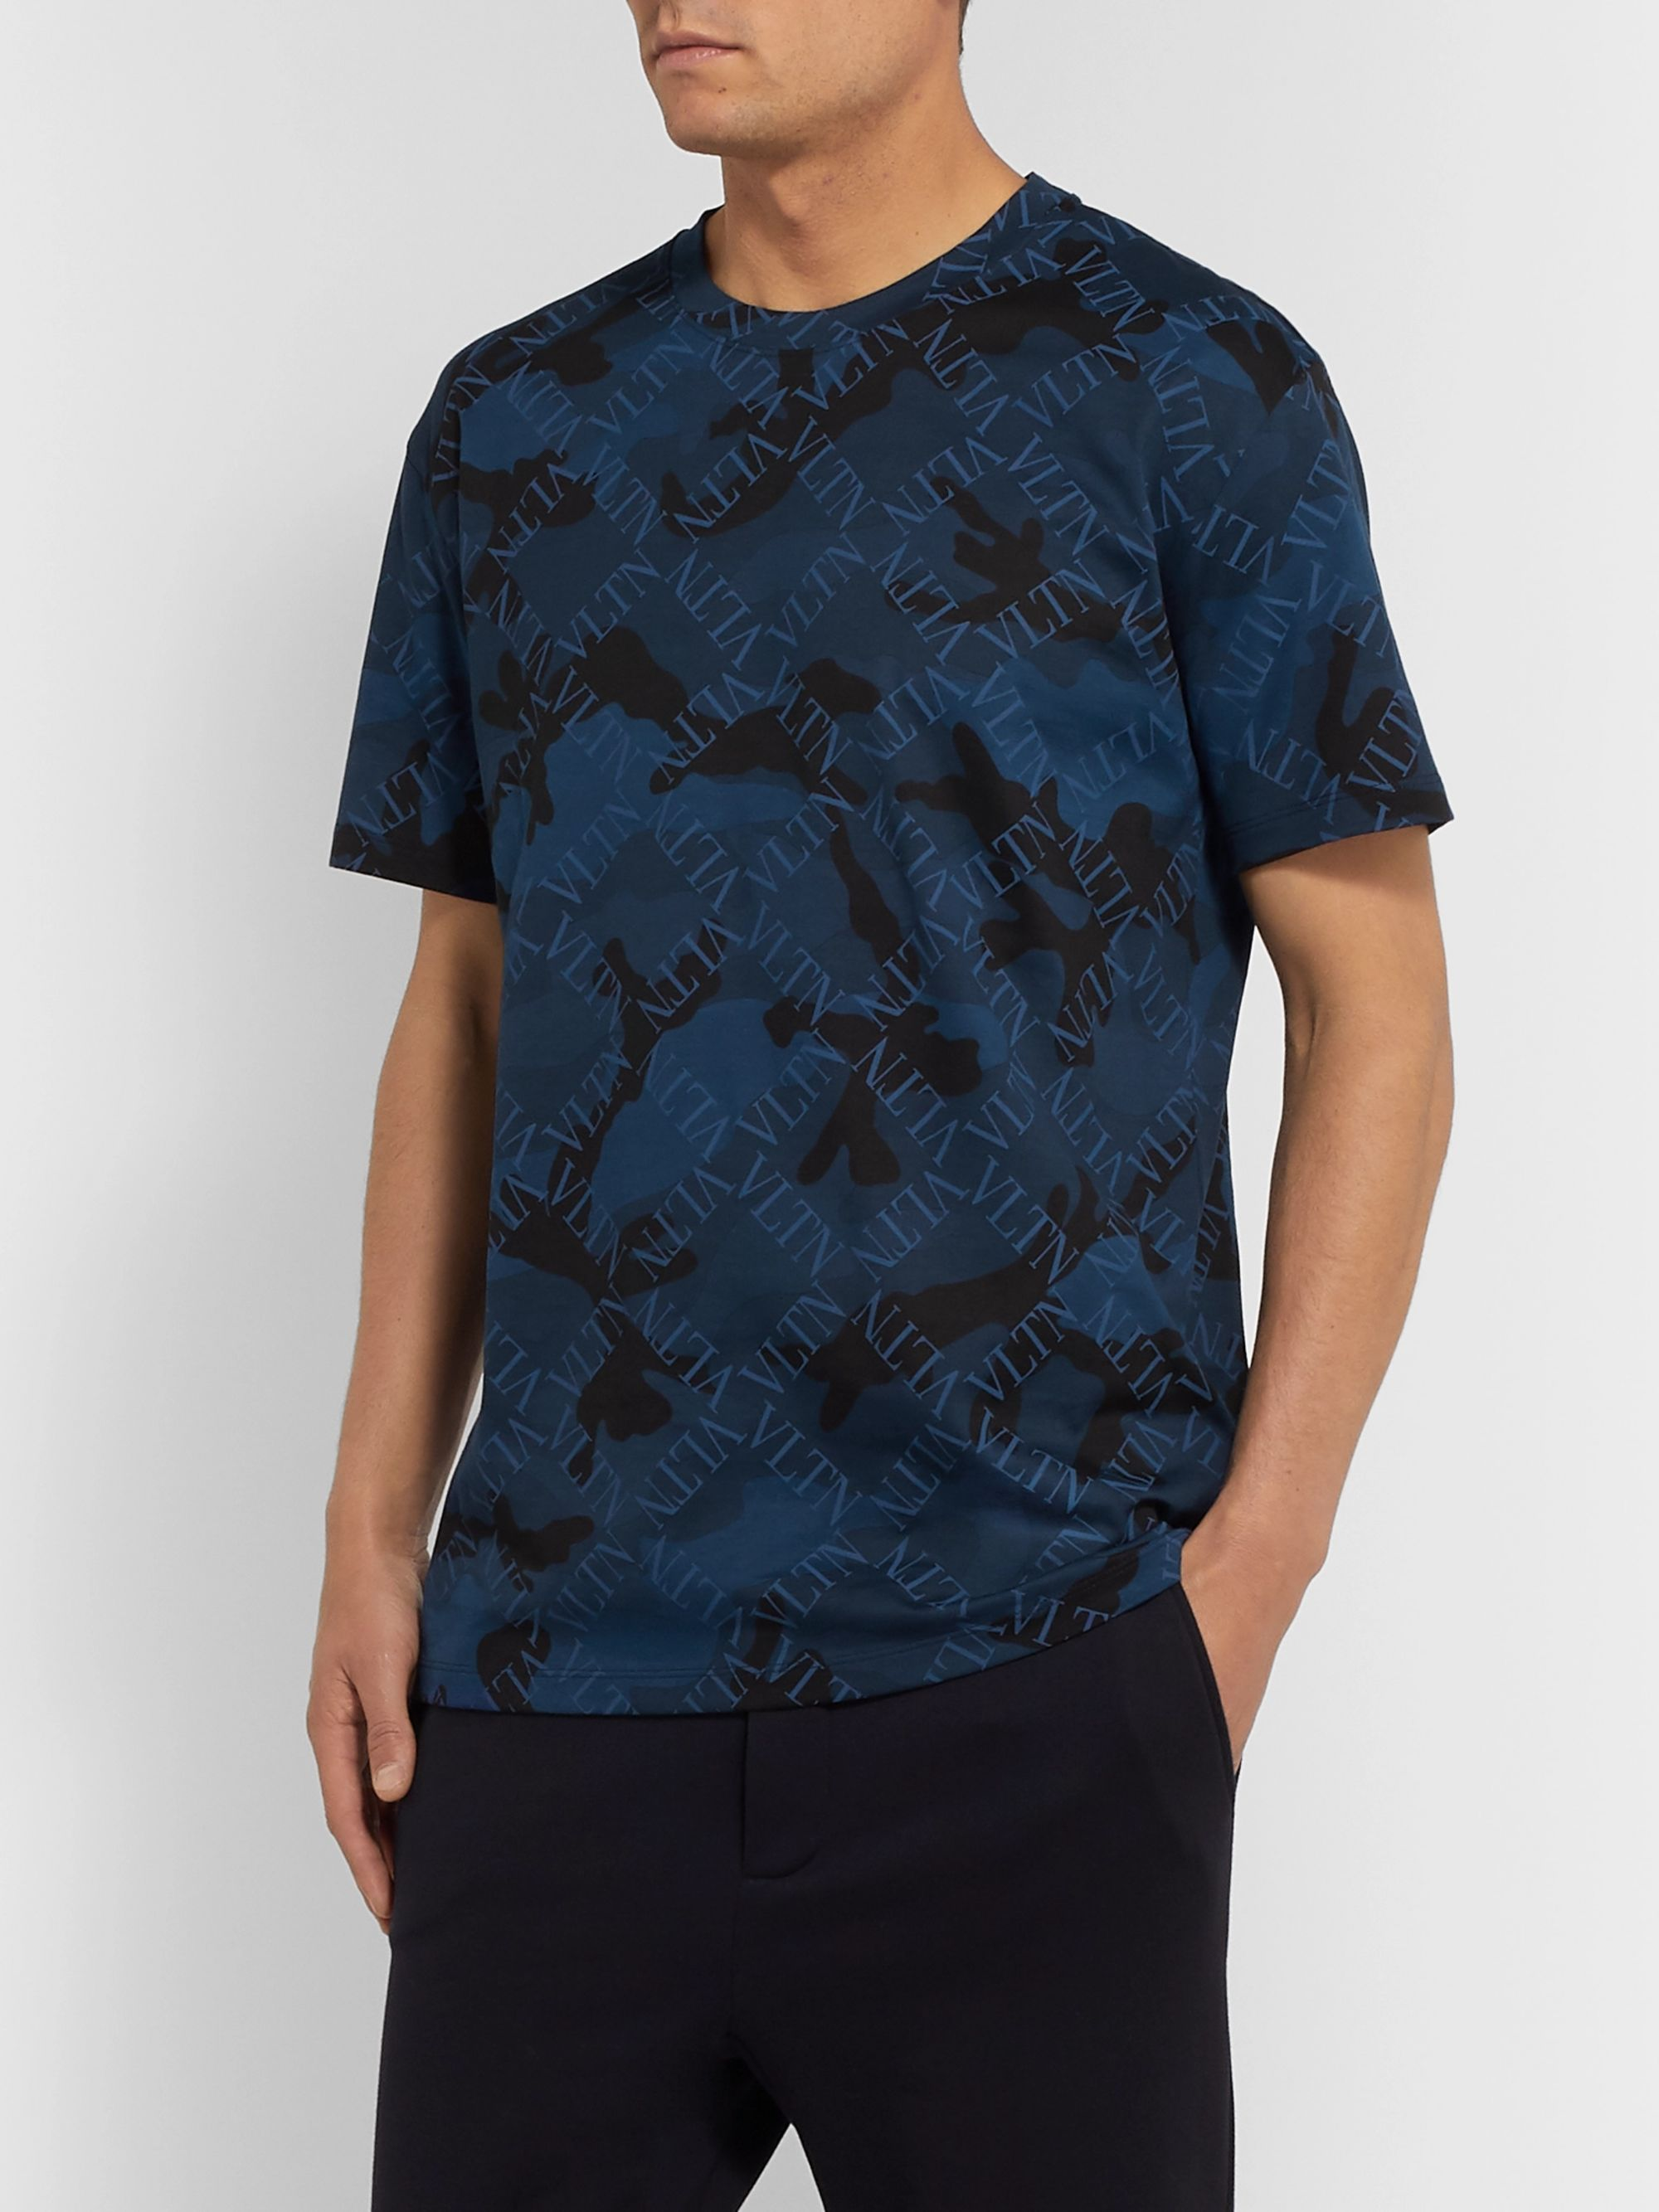 Valentino Slim-Fit Logo and Camouflage-Print Cotton-Jersey T-Shirt